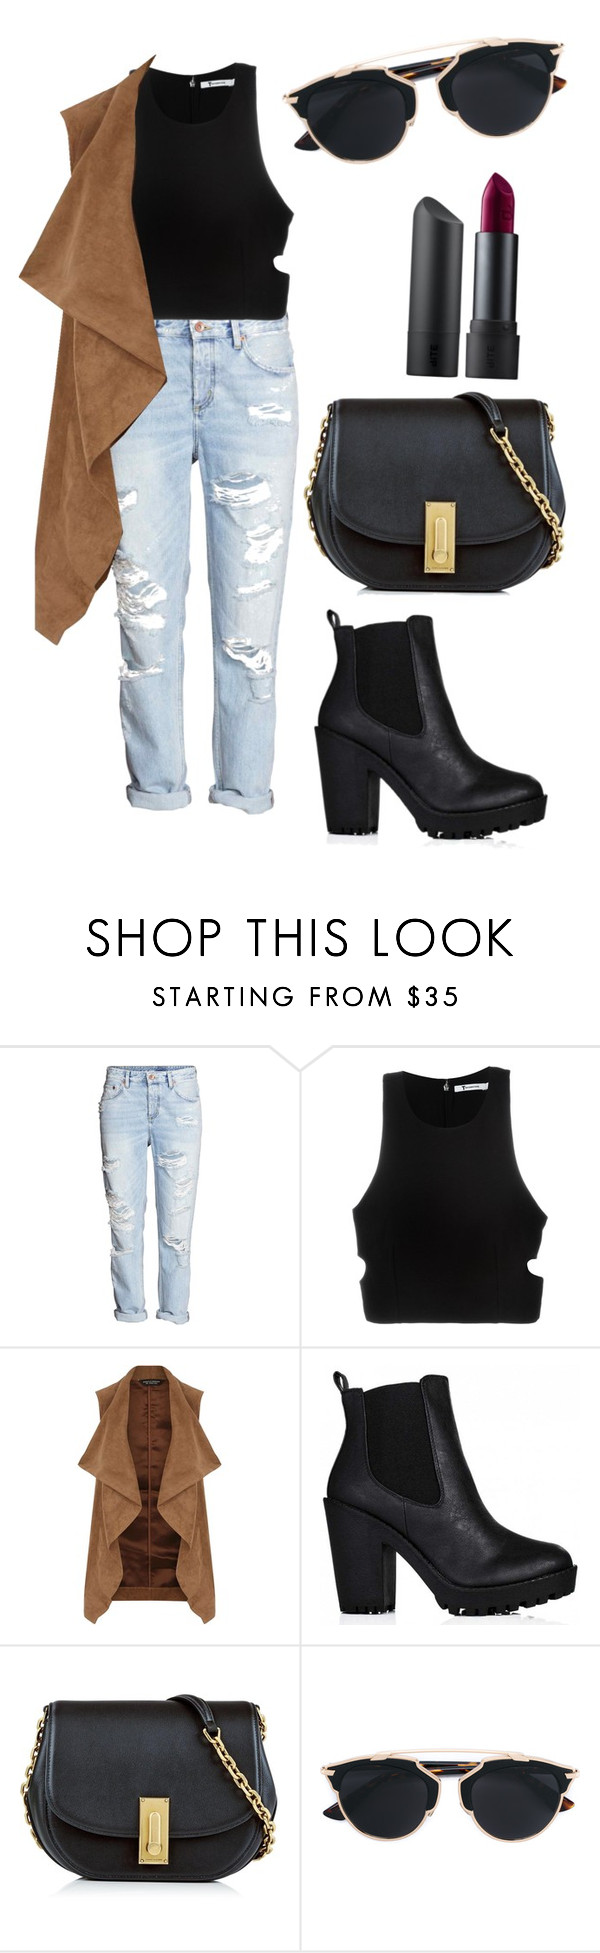 """""""rocker vibes"""" by fashionblogger2122 on Polyvore featuring T By Alexander Wang, Dorothy Perkins, Marc Jacobs, Christian Dior and Bite"""